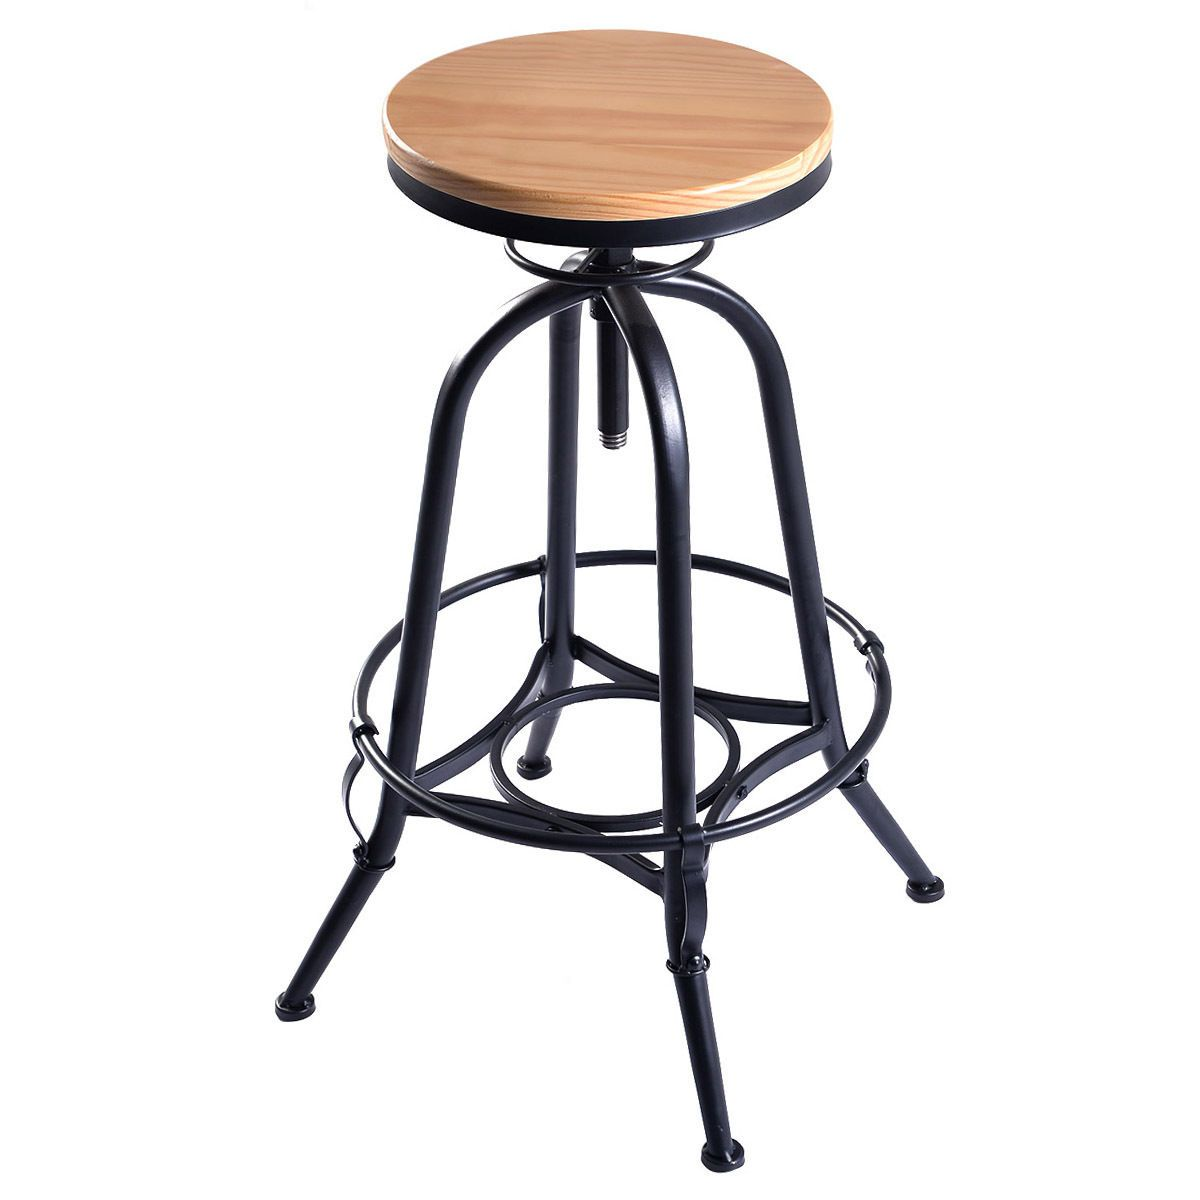 Vintage Bar Stool Metal Frame Wood Top Adjustable Height Swivel Industrial New Furniture Vintage Bar Stools Adjustable Bar Stools Home Bar Furniture